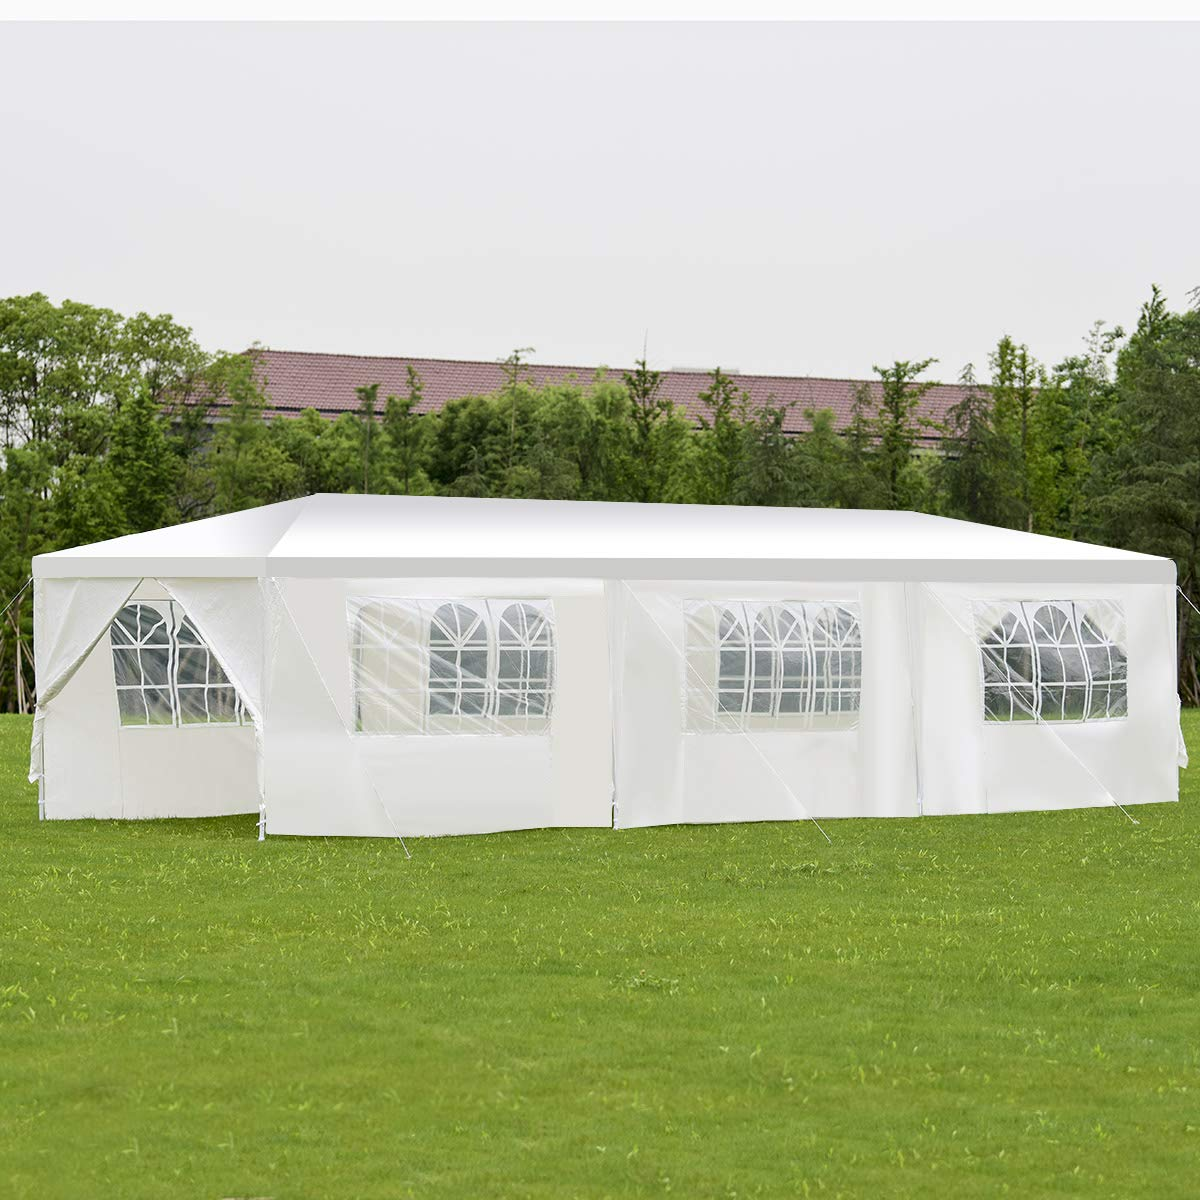 BenefitUSA Wedding Party Tent Outdoor Camping 10'x30' Easy Set Gazebo BBQ Pavilion Canopy Cater Events by BenefitUSA